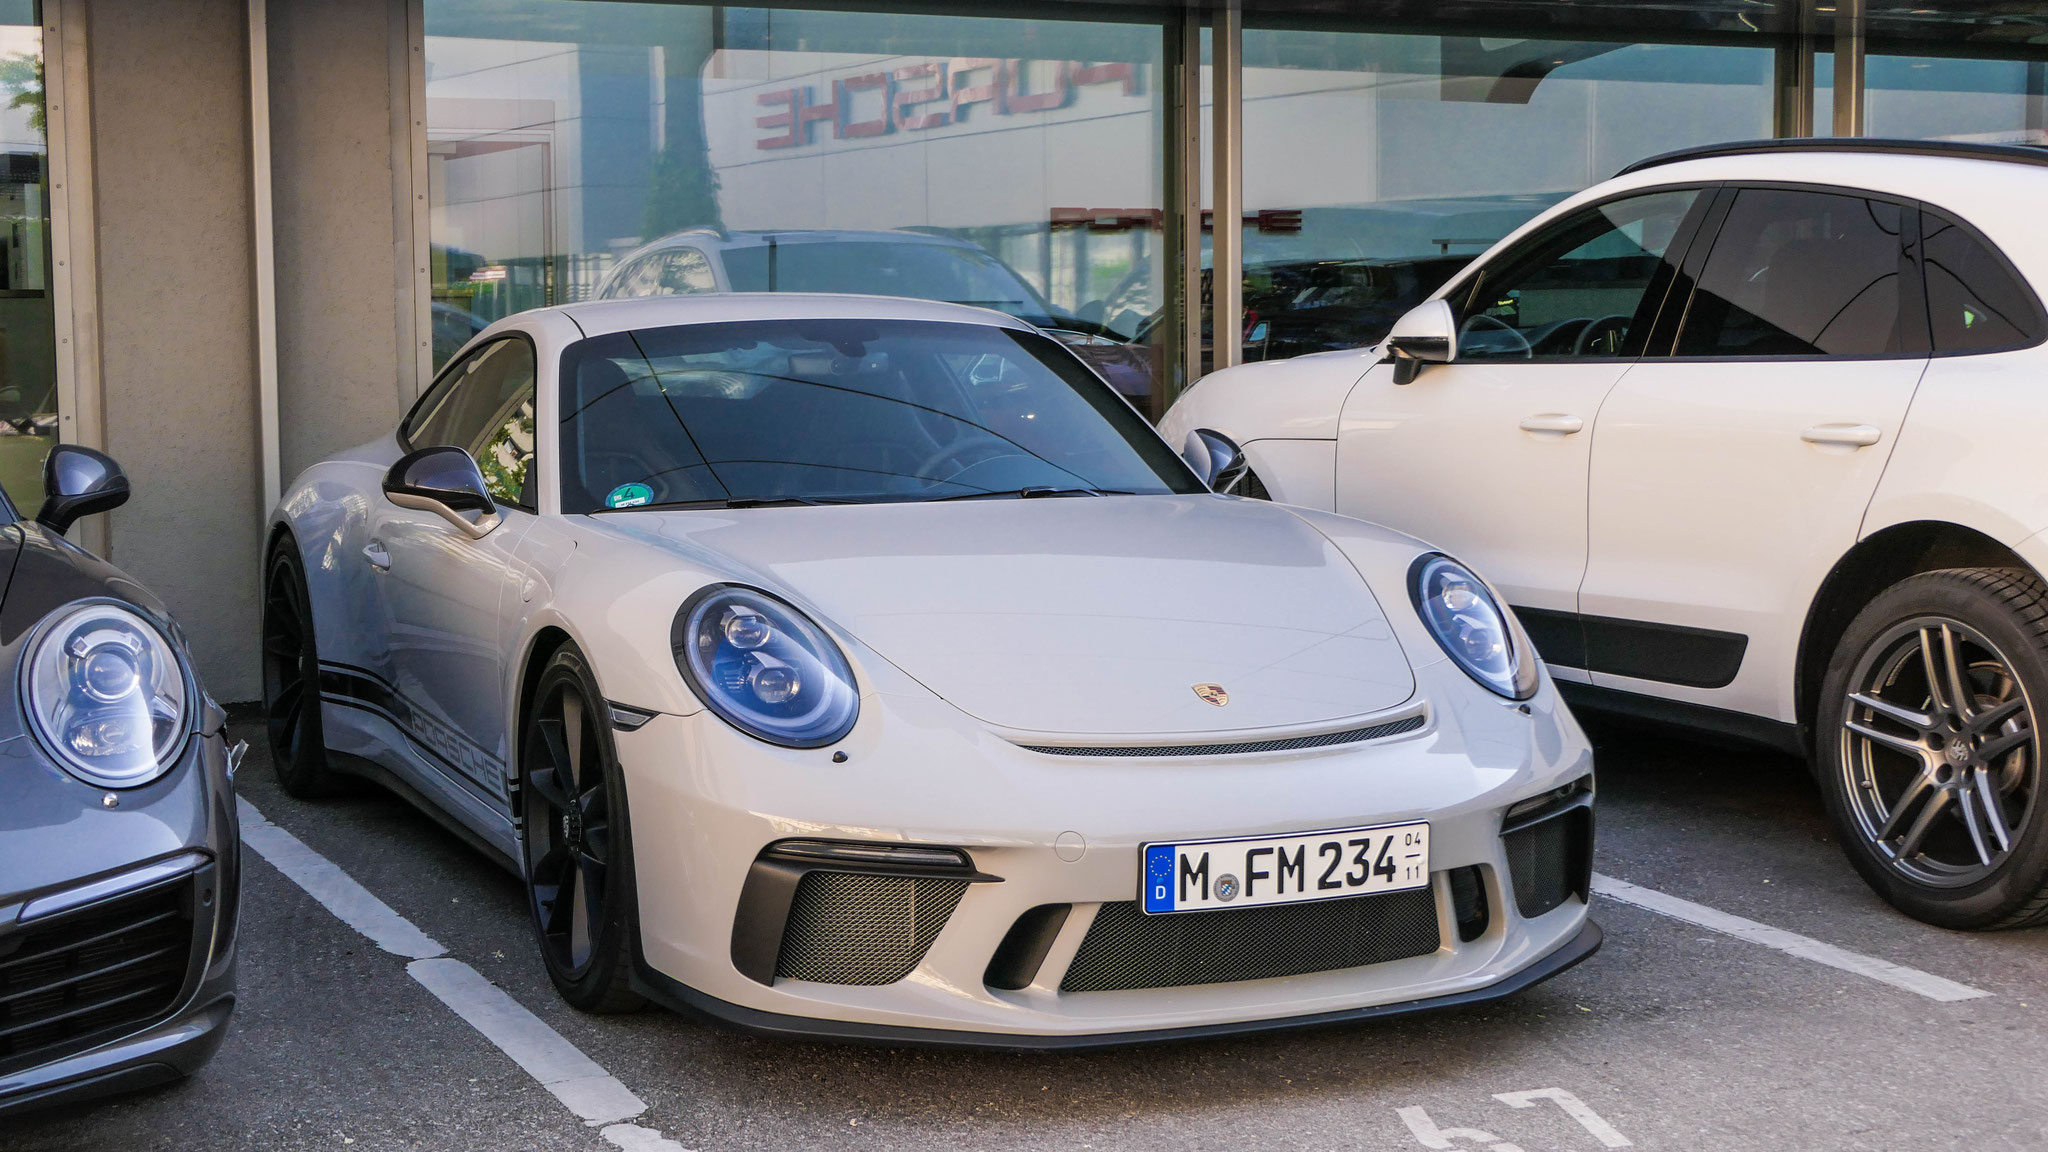 Porsche 991 GT3 Touring Package - M-FM-234